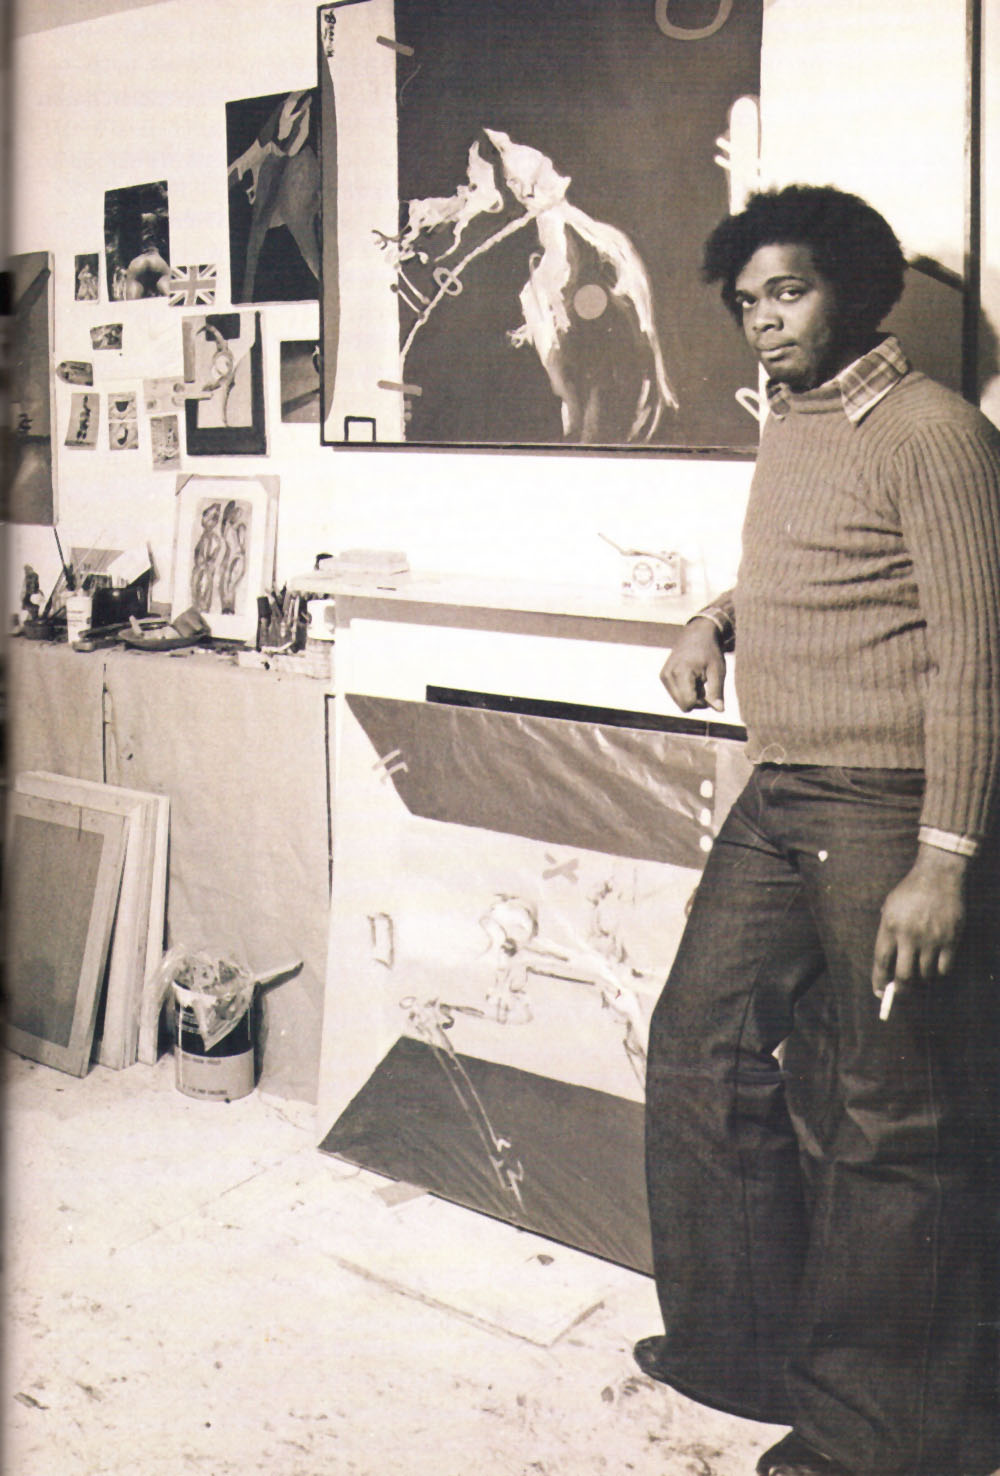 Branch as a young artist in London- he worked there in a Battersea studio from 1969 to 1975. Photograph courtesy Winston Branch